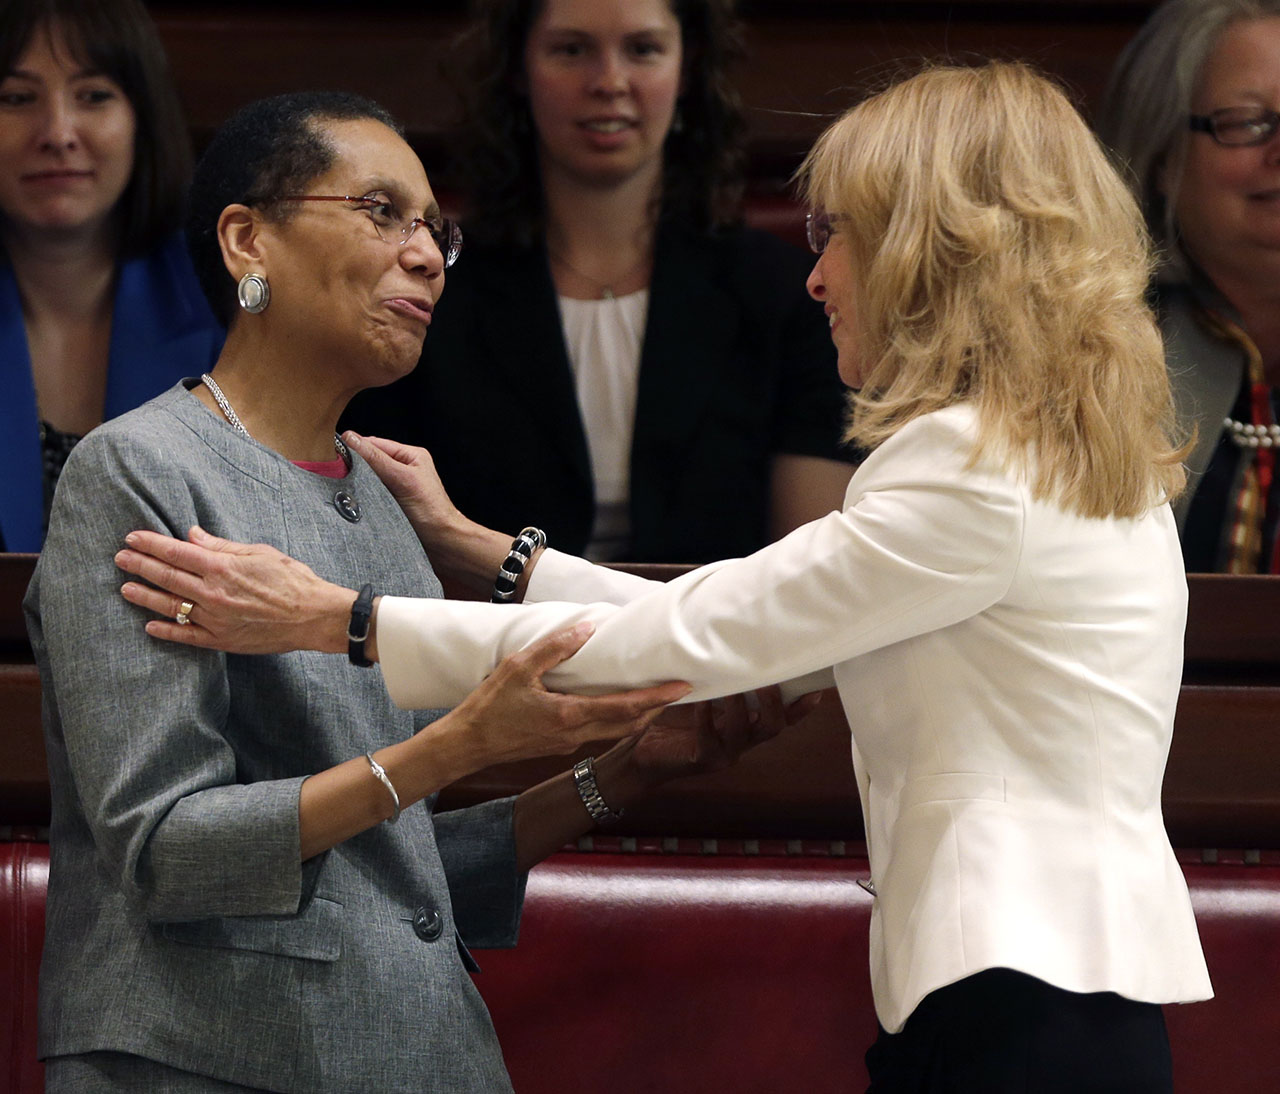 <div class='meta'><div class='origin-logo' data-origin='AP'></div><span class='caption-text' data-credit='AP Photo/Mike Groll'>Justice Sheila Abdus-Salaam, left, is congratulated after being confirmed to serve on the New York State Court of Appeals by friend and Albany City Court Judge Rachel Kretser.</span></div>